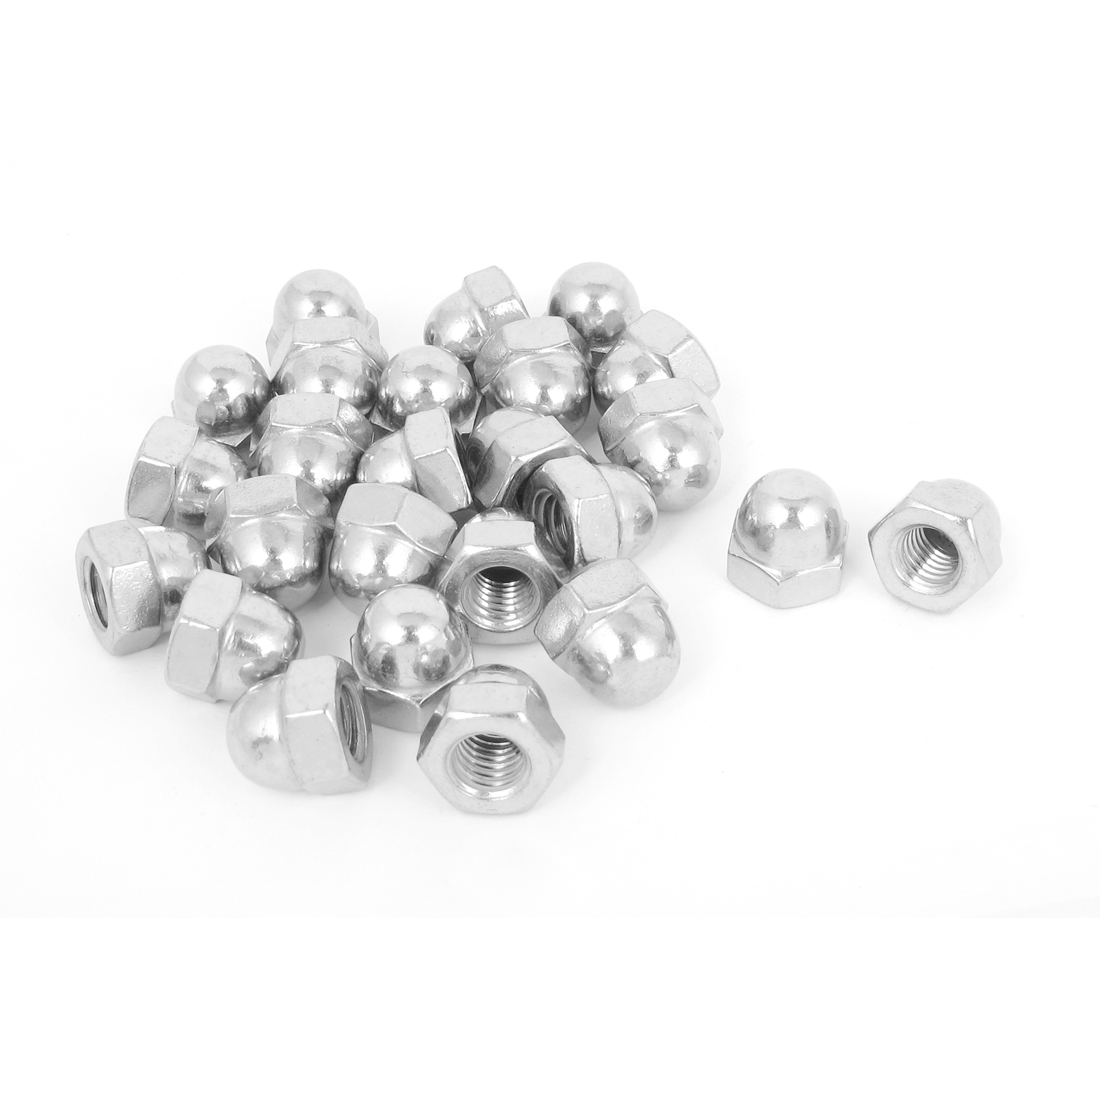 "3/8""-16 304 Stainless Steel Dome Head Cap Hex Nuts Silver Tone 25Pcs"